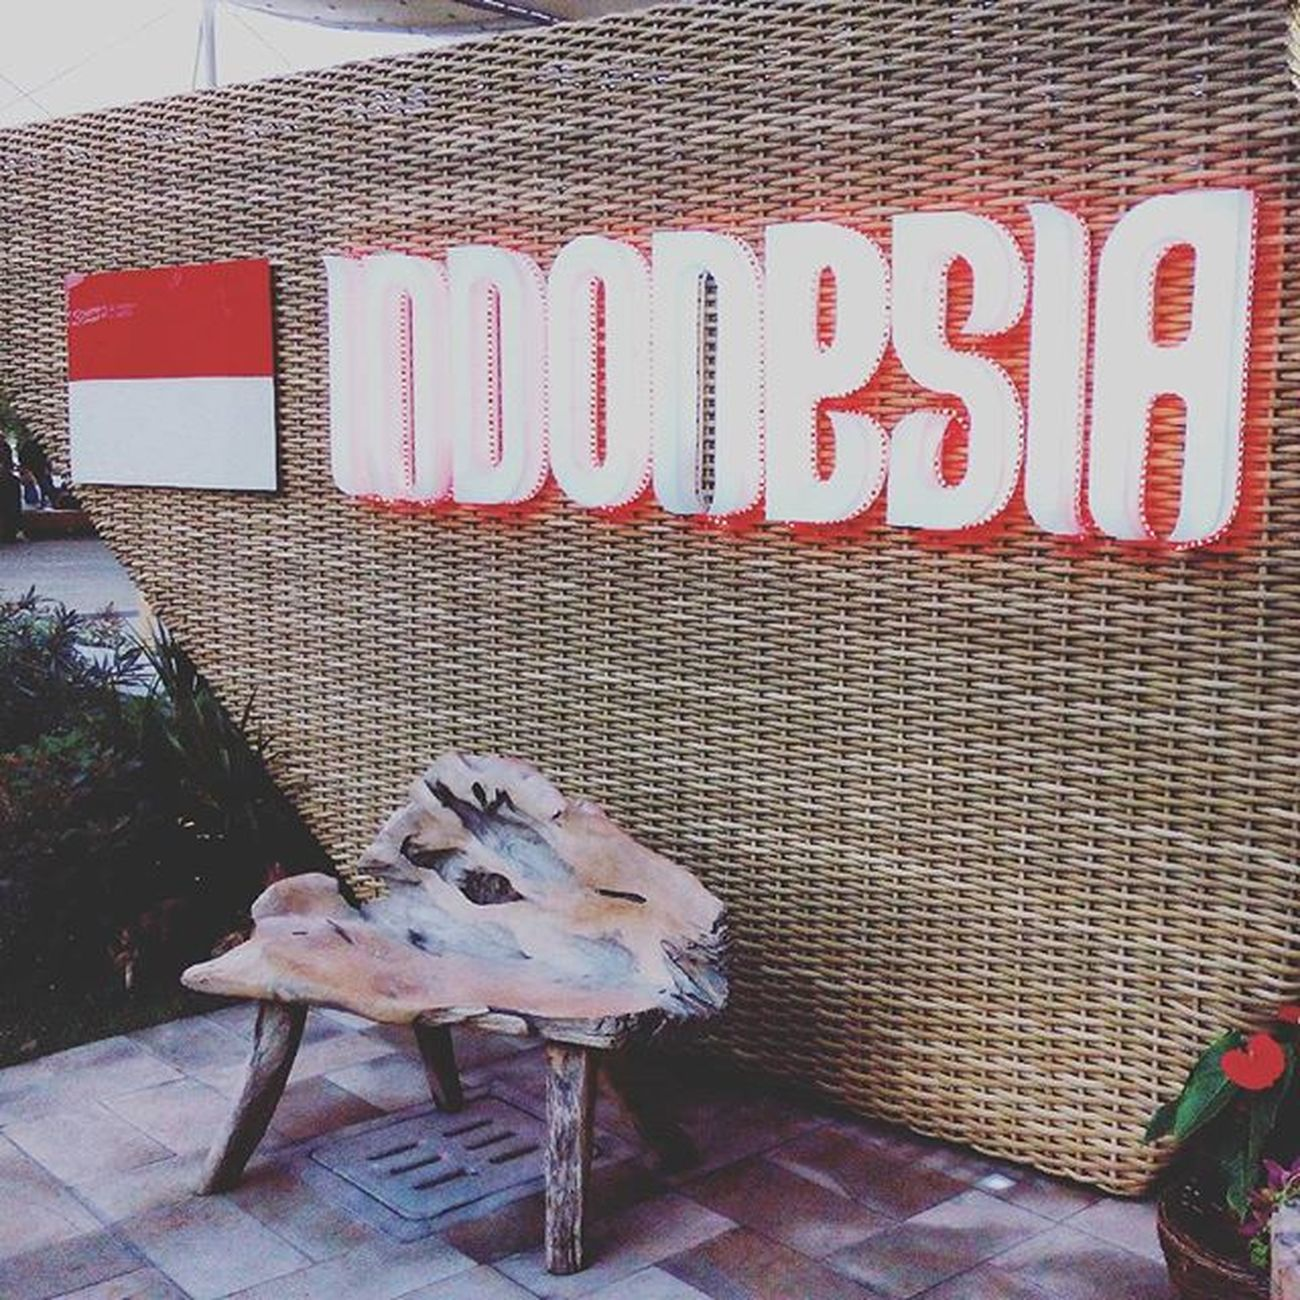 Italy Expomilano Expomilano2015 Expo 2015 Indonesiapavilion